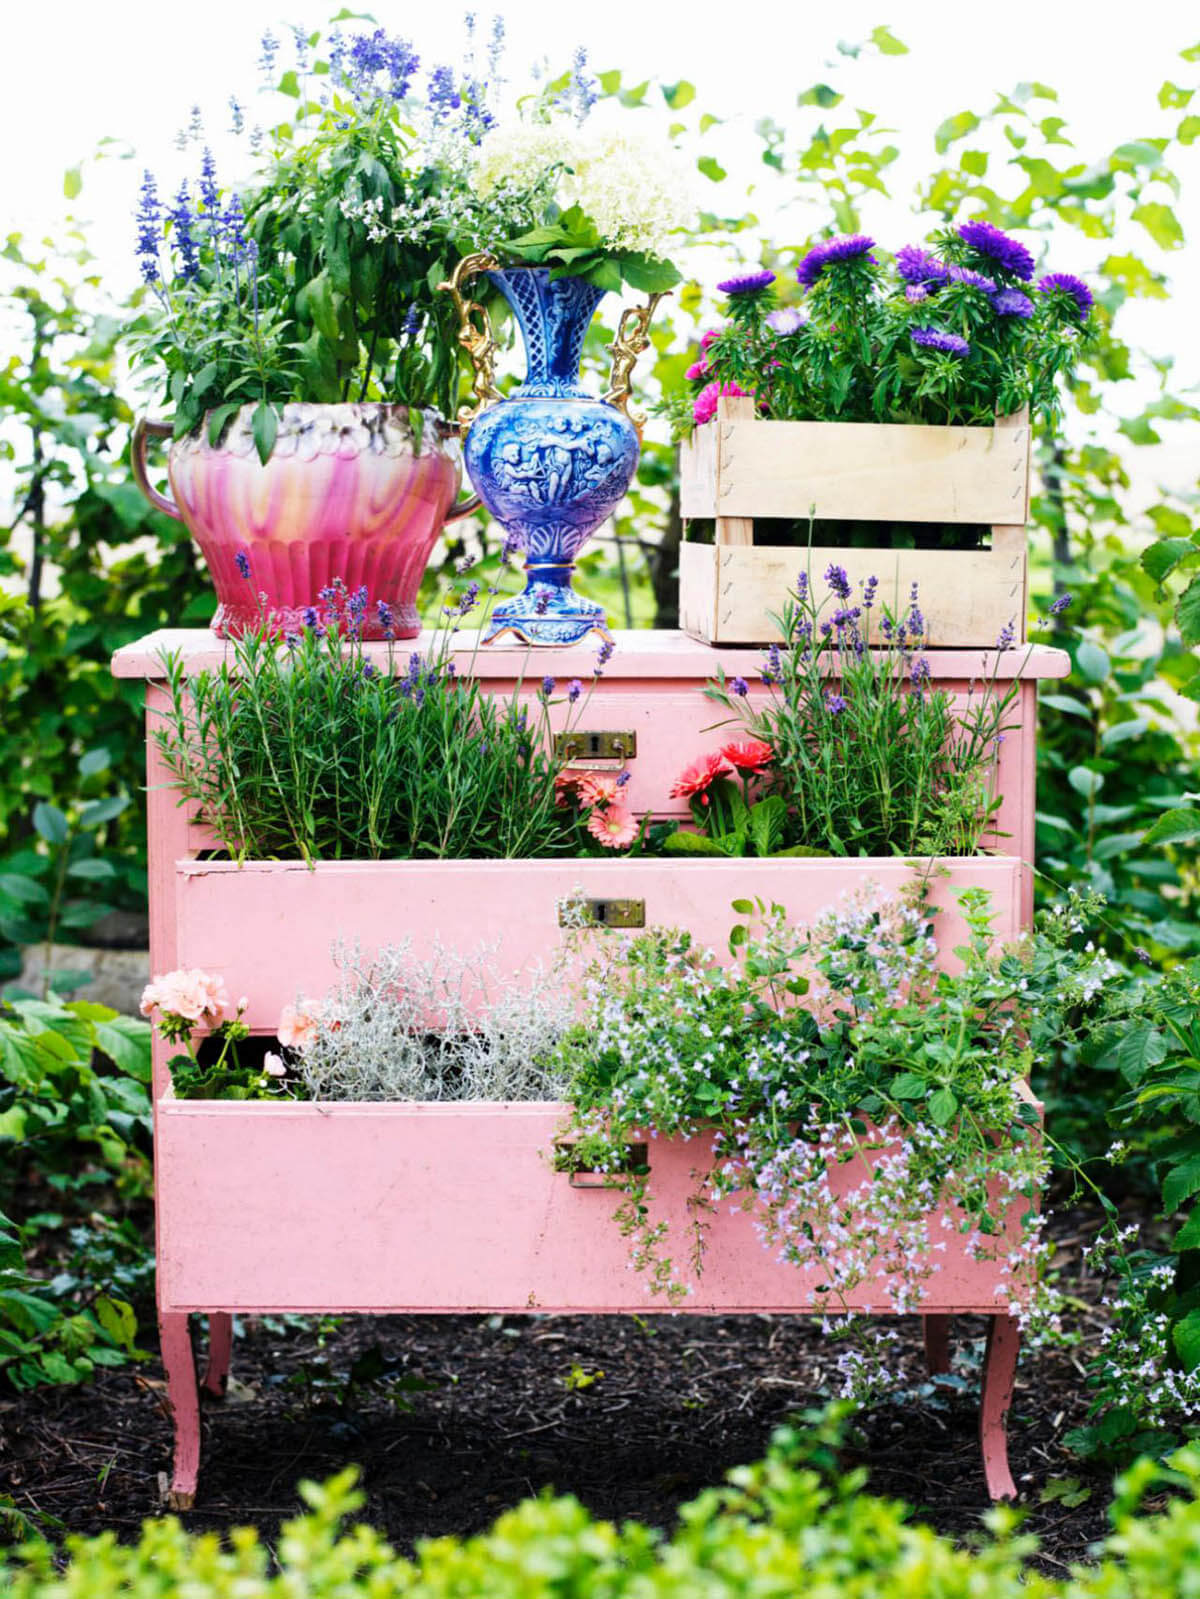 Vintage Garden Decor Ideas: Upcycled Vintage Desk Planter Decoration